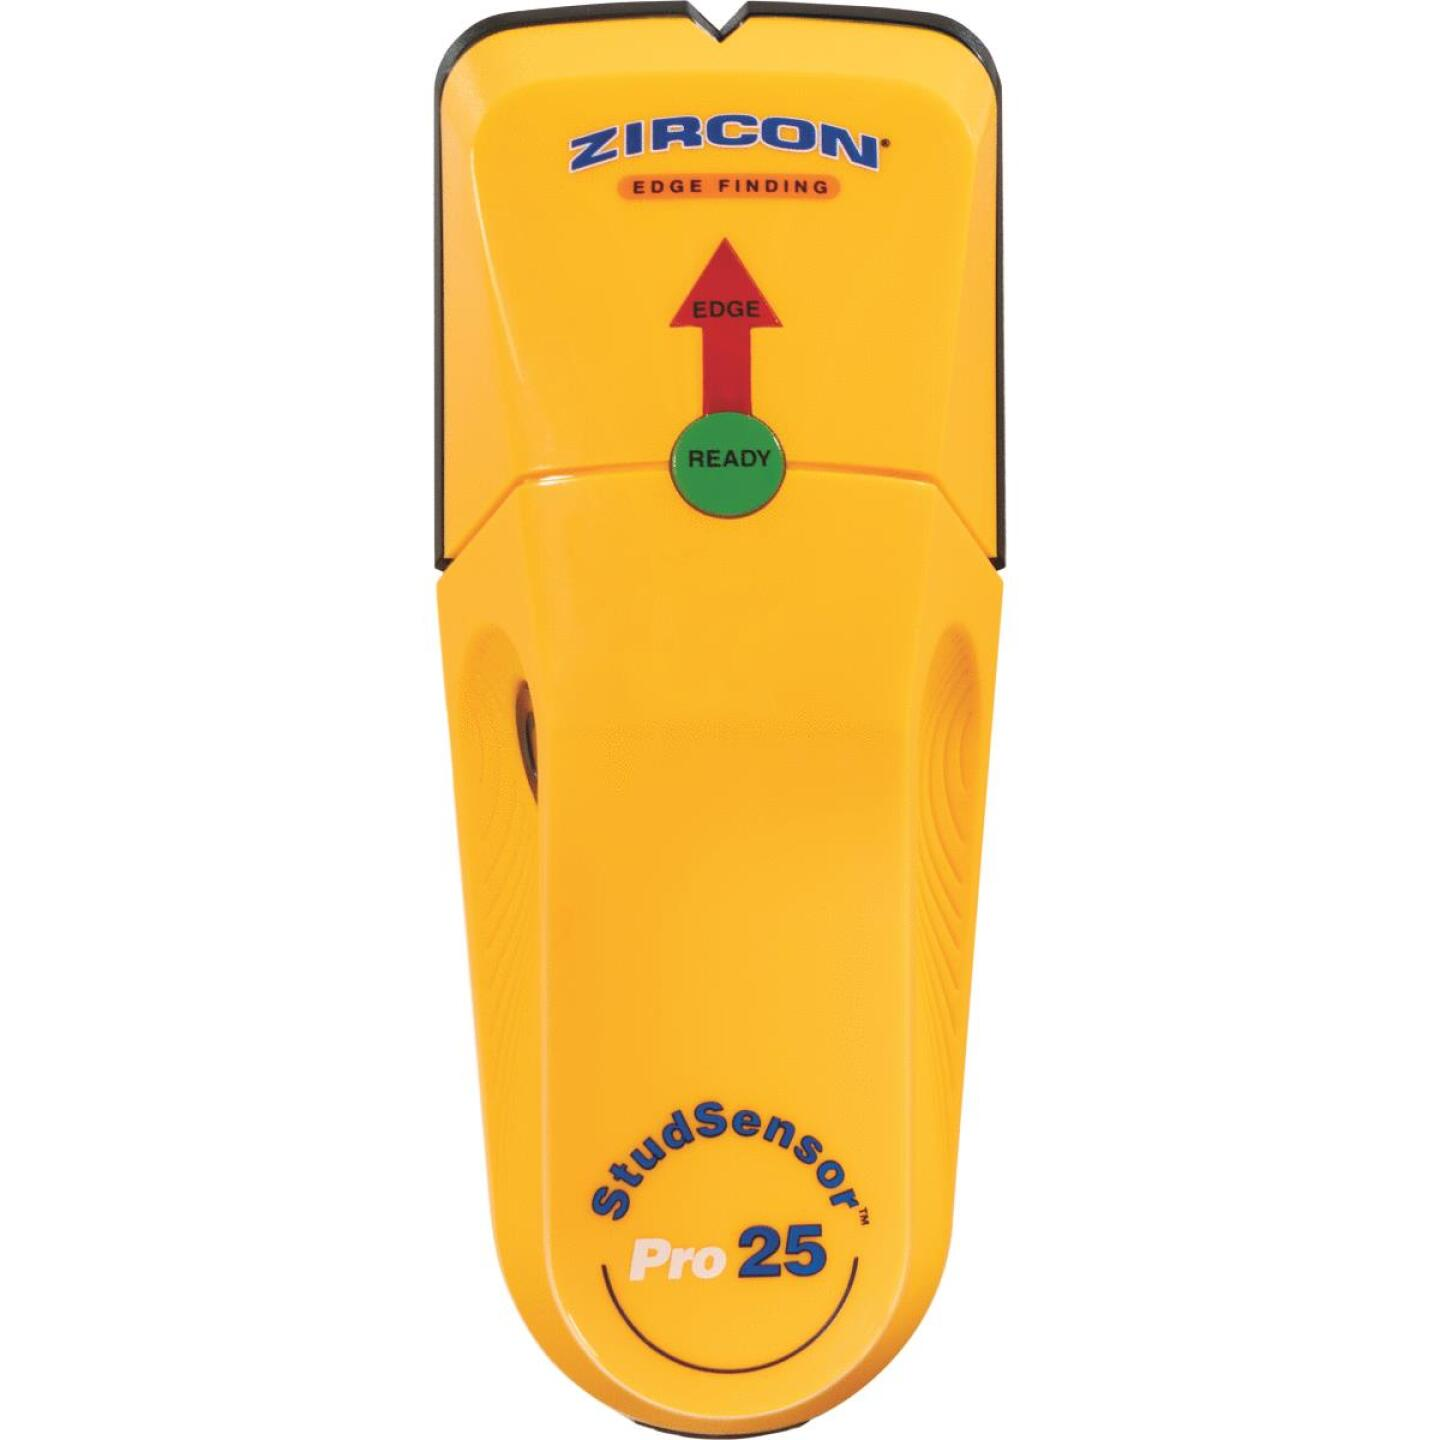 Zircon Pro 25 Stud Finder w/Picture Hanging Kit Image 2